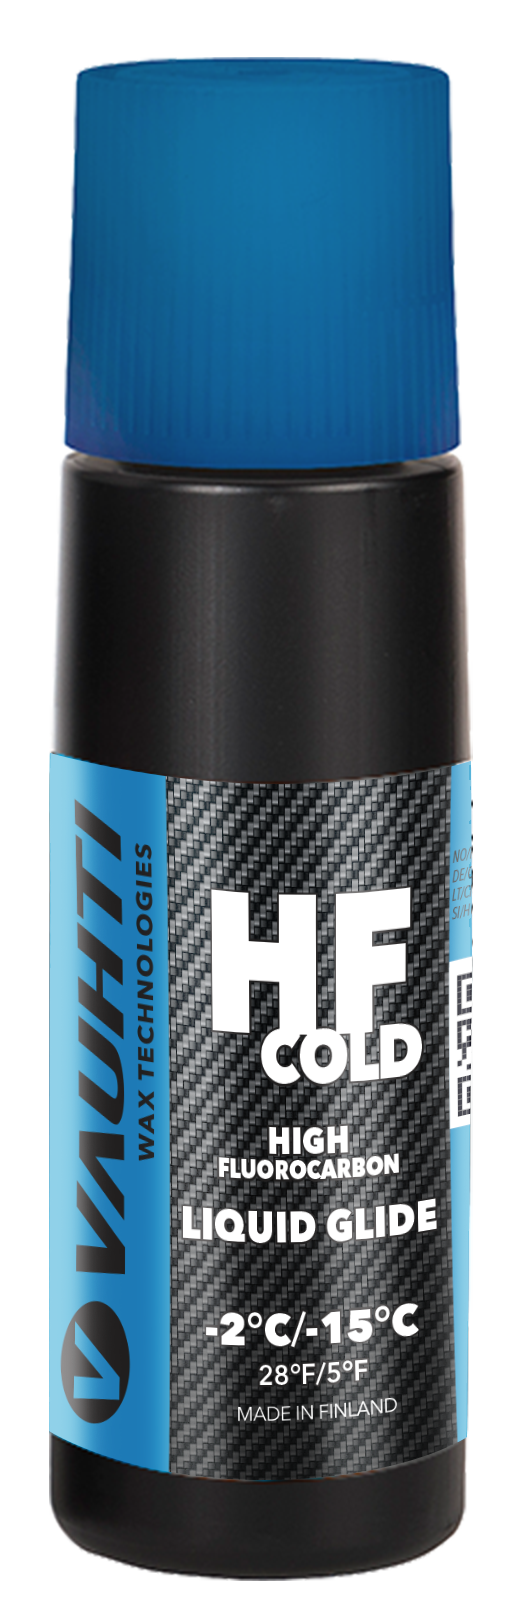 A racing liquid glide wax for cold snow.